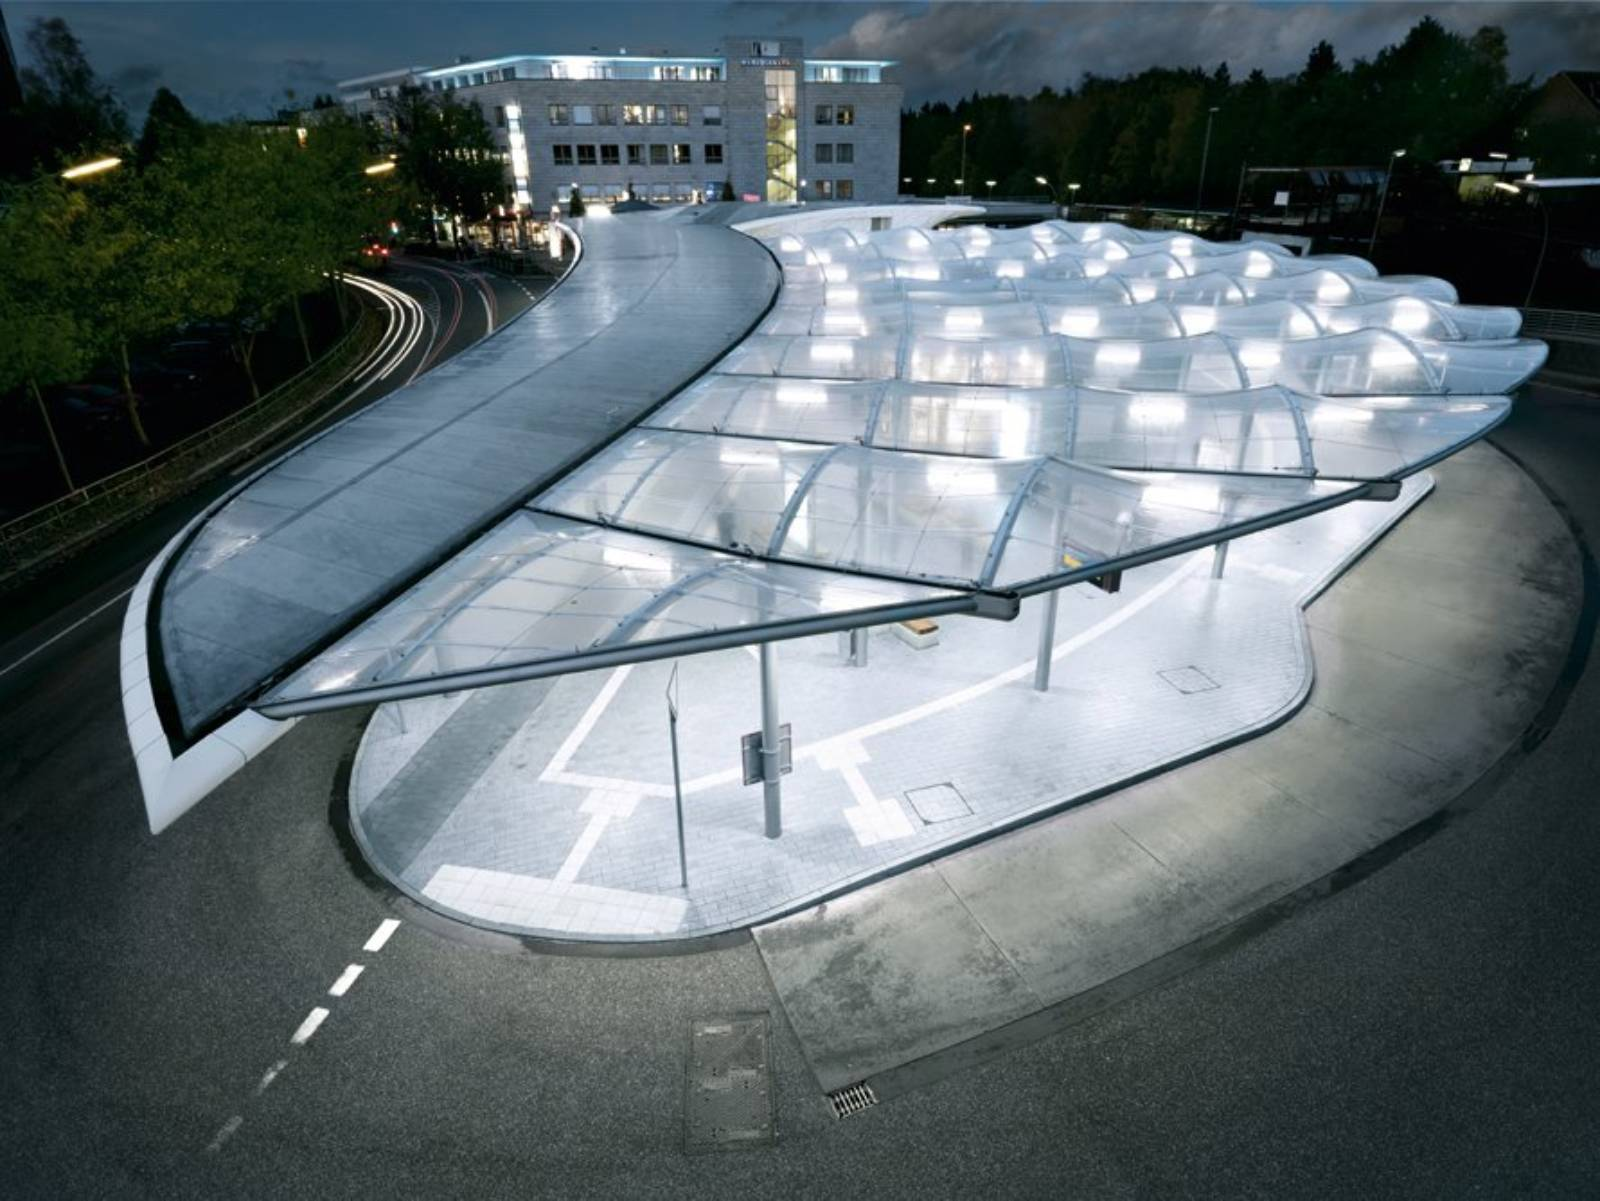 Hamburg Architektur Bus Station By Blunck+morgen Architekten – Aasarchitecture